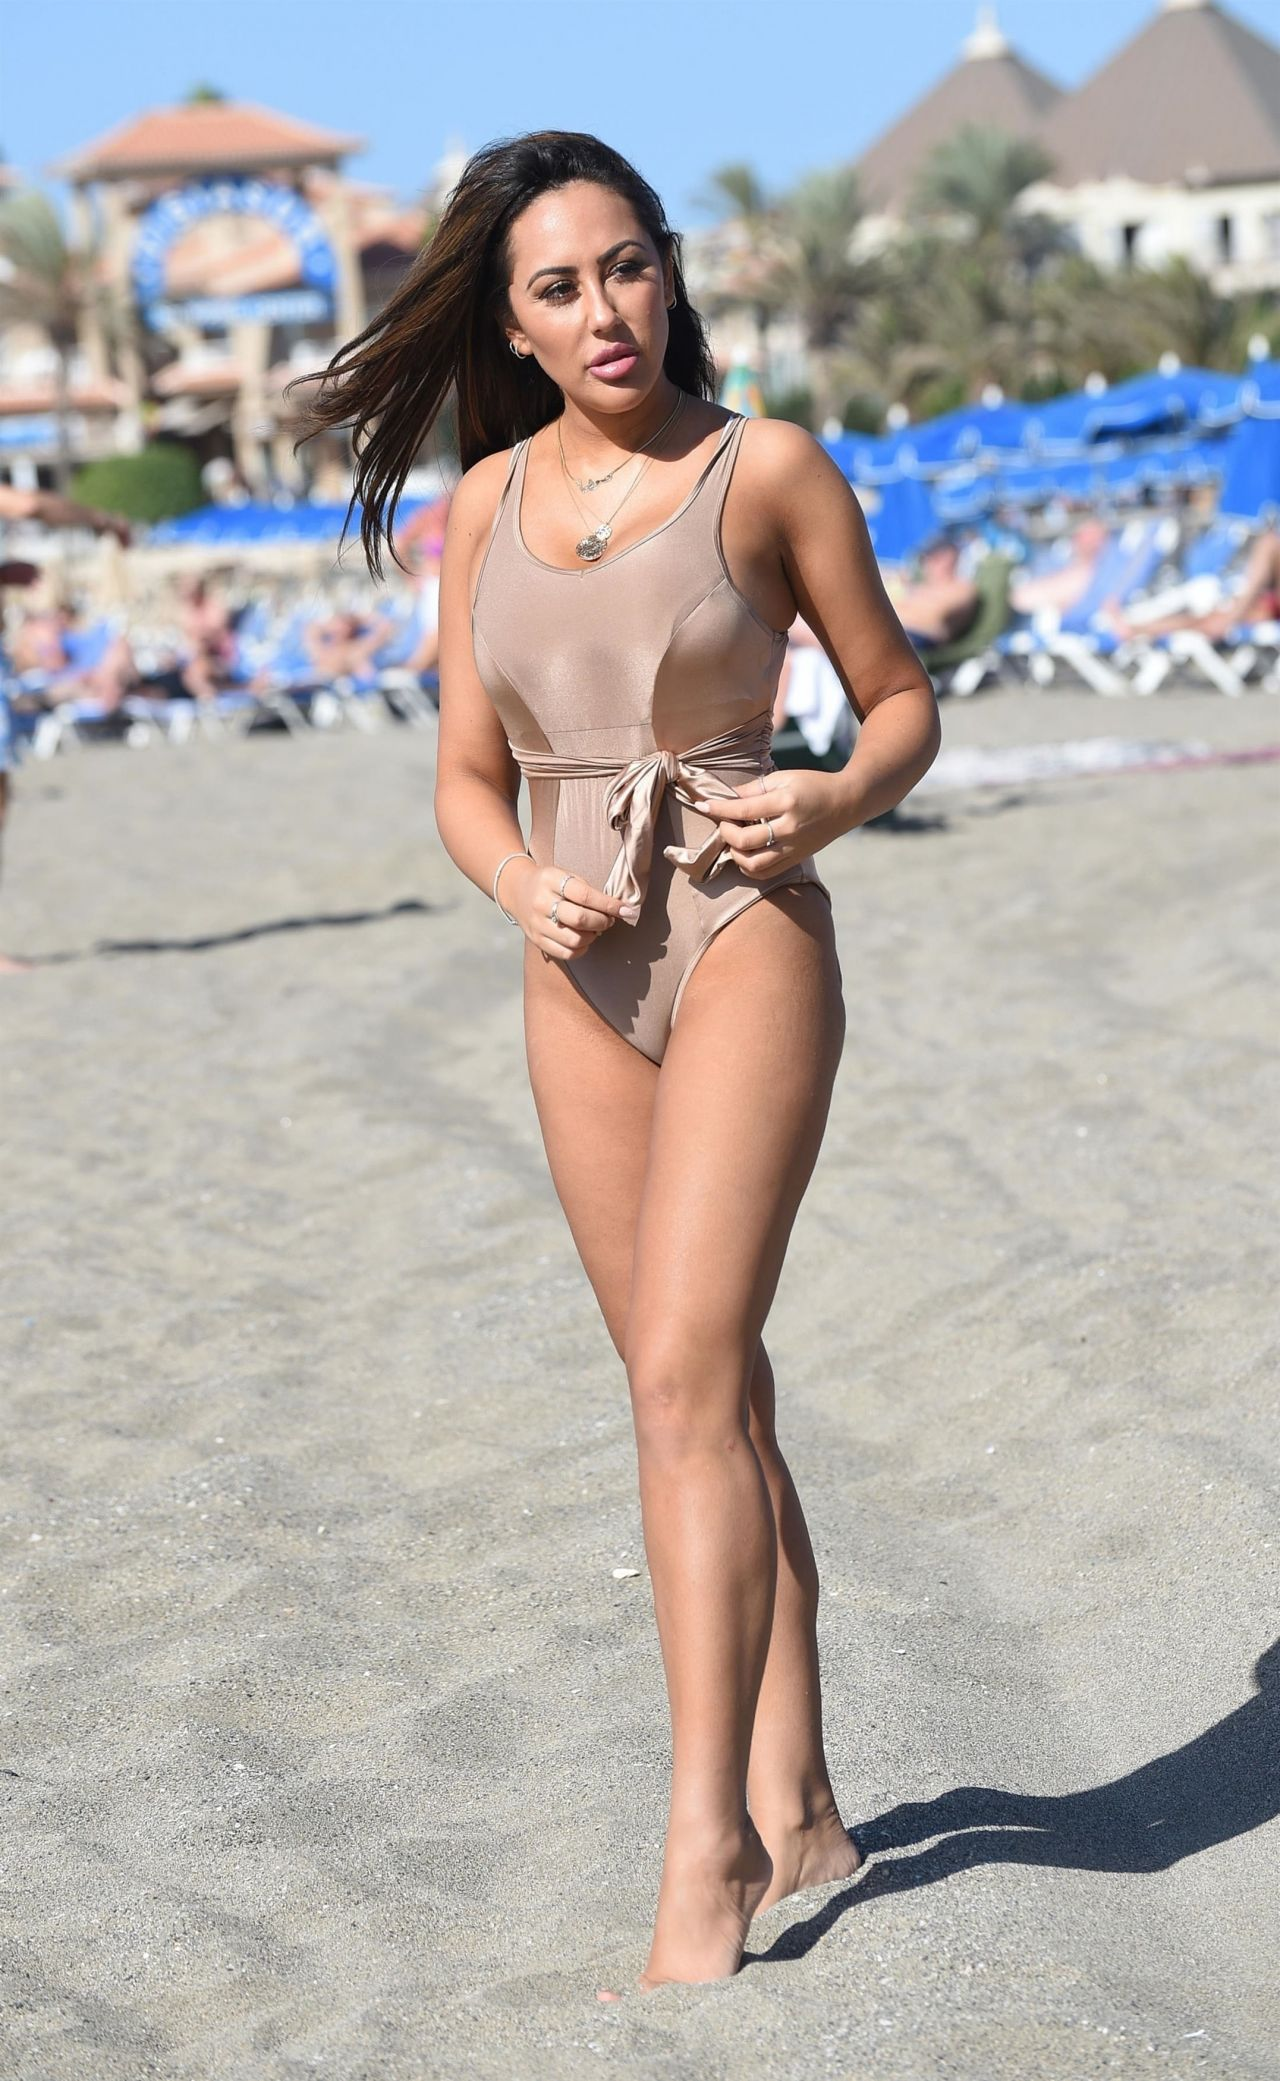 Sophie Kasaei in Pink Bikini on the beach in Lanzarote Pic 20 of 35